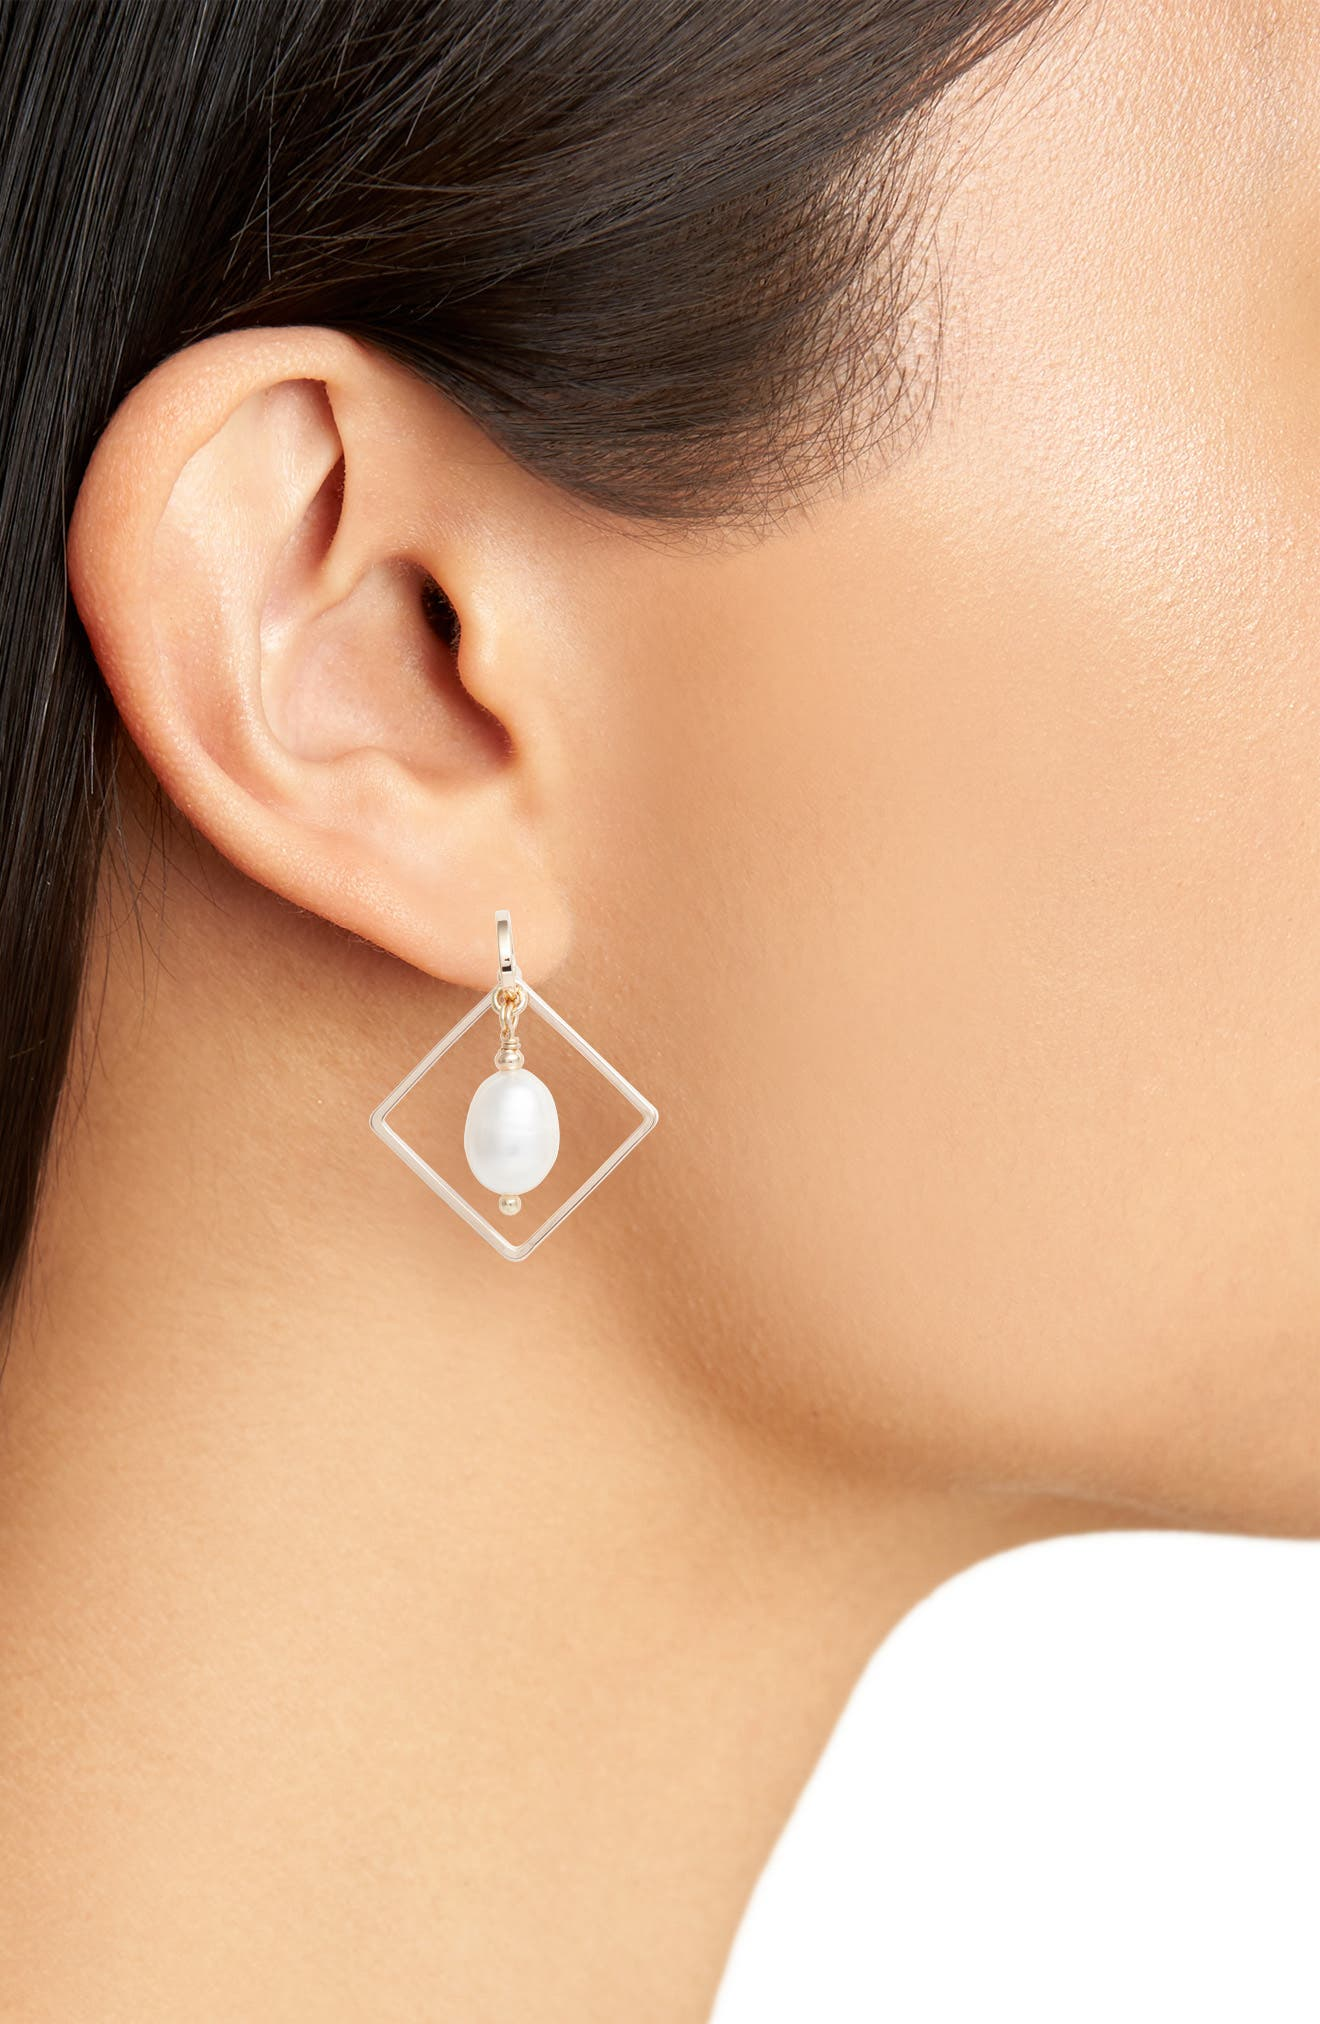 Tiny Square Freshwater Pearl Drop Earrings,                             Alternate thumbnail 2, color,                             710